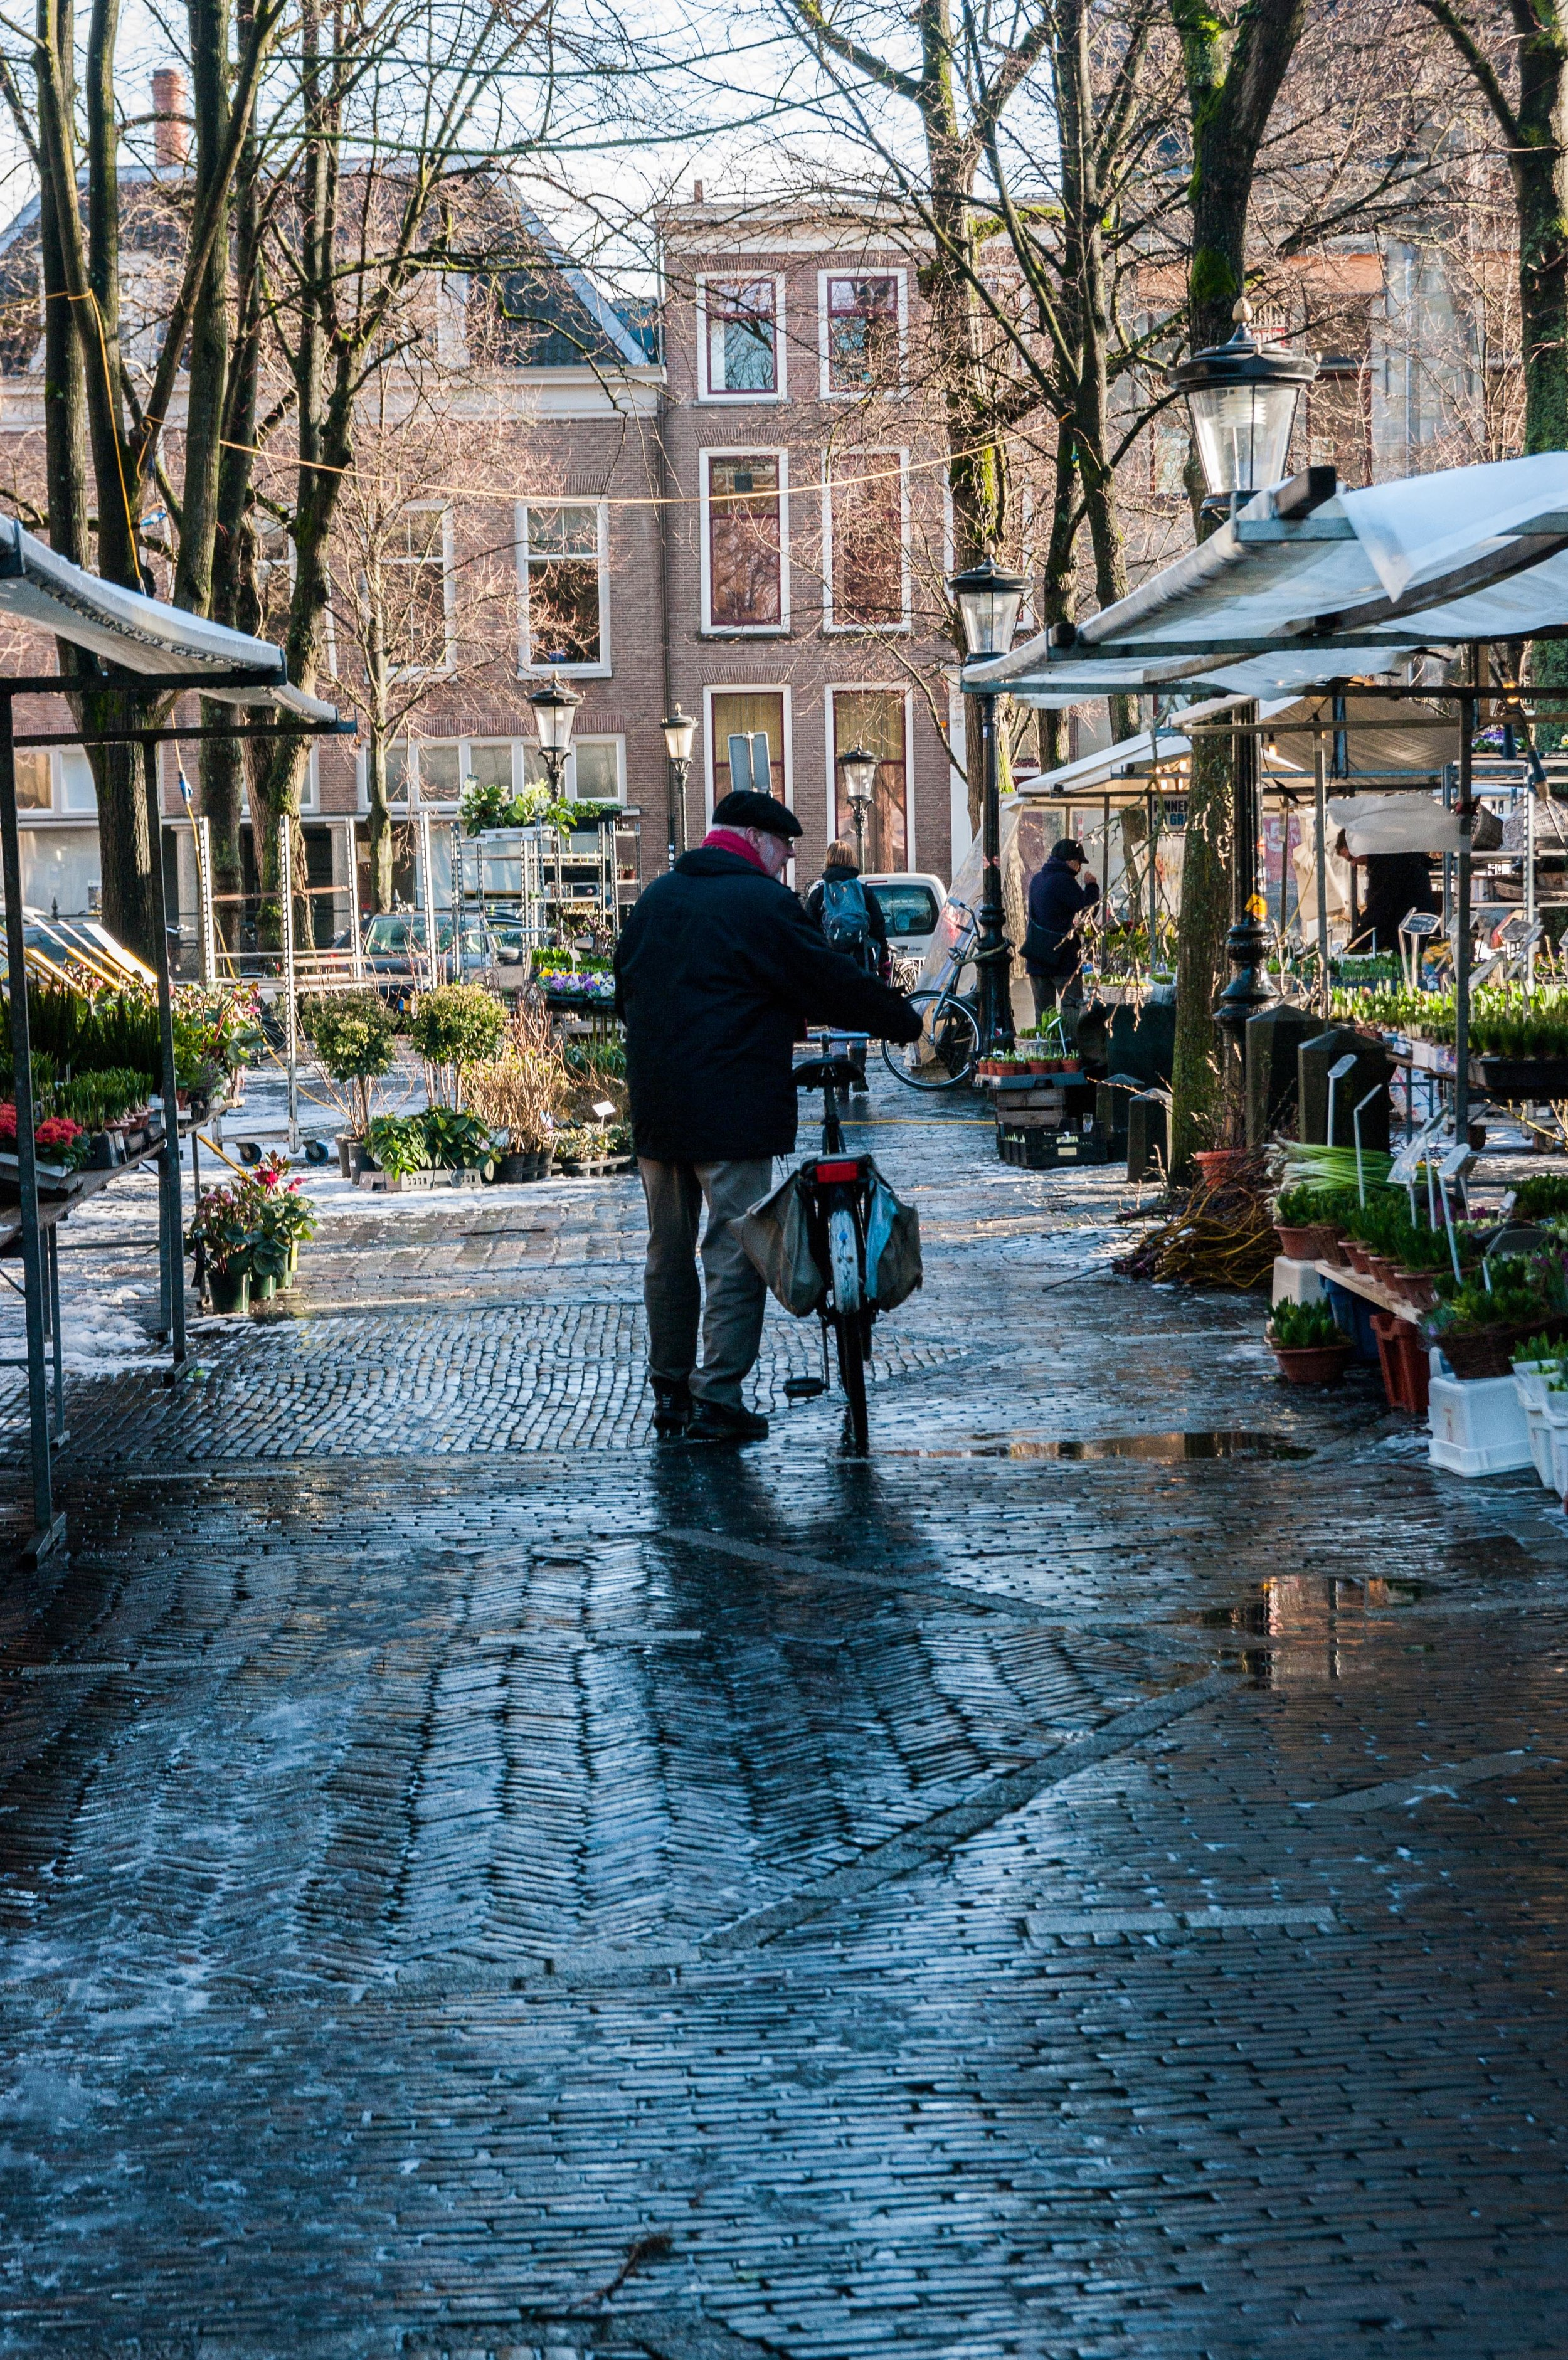 Utrecht is a day trip destination from Amsterdam and Den Haag